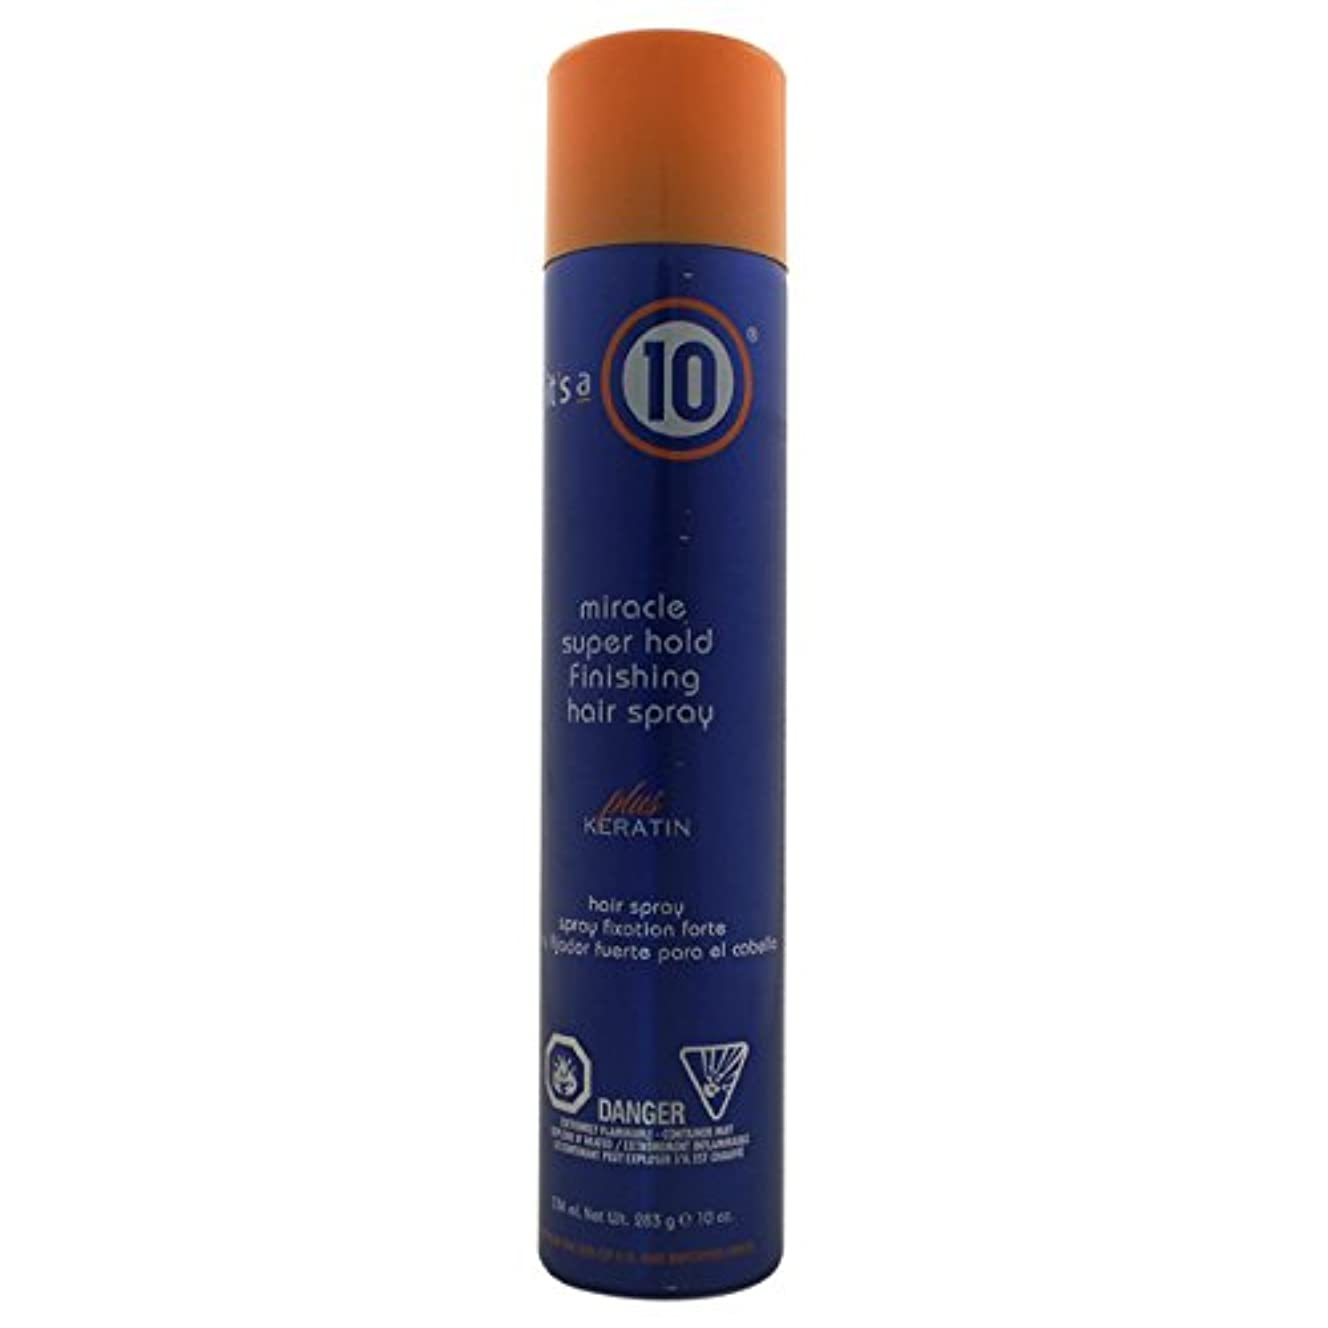 by It's a 10 MIRACLE SUPER HOLD FINISHING SPRAY PLUS KERATIN 10 OZ by ITS A 10